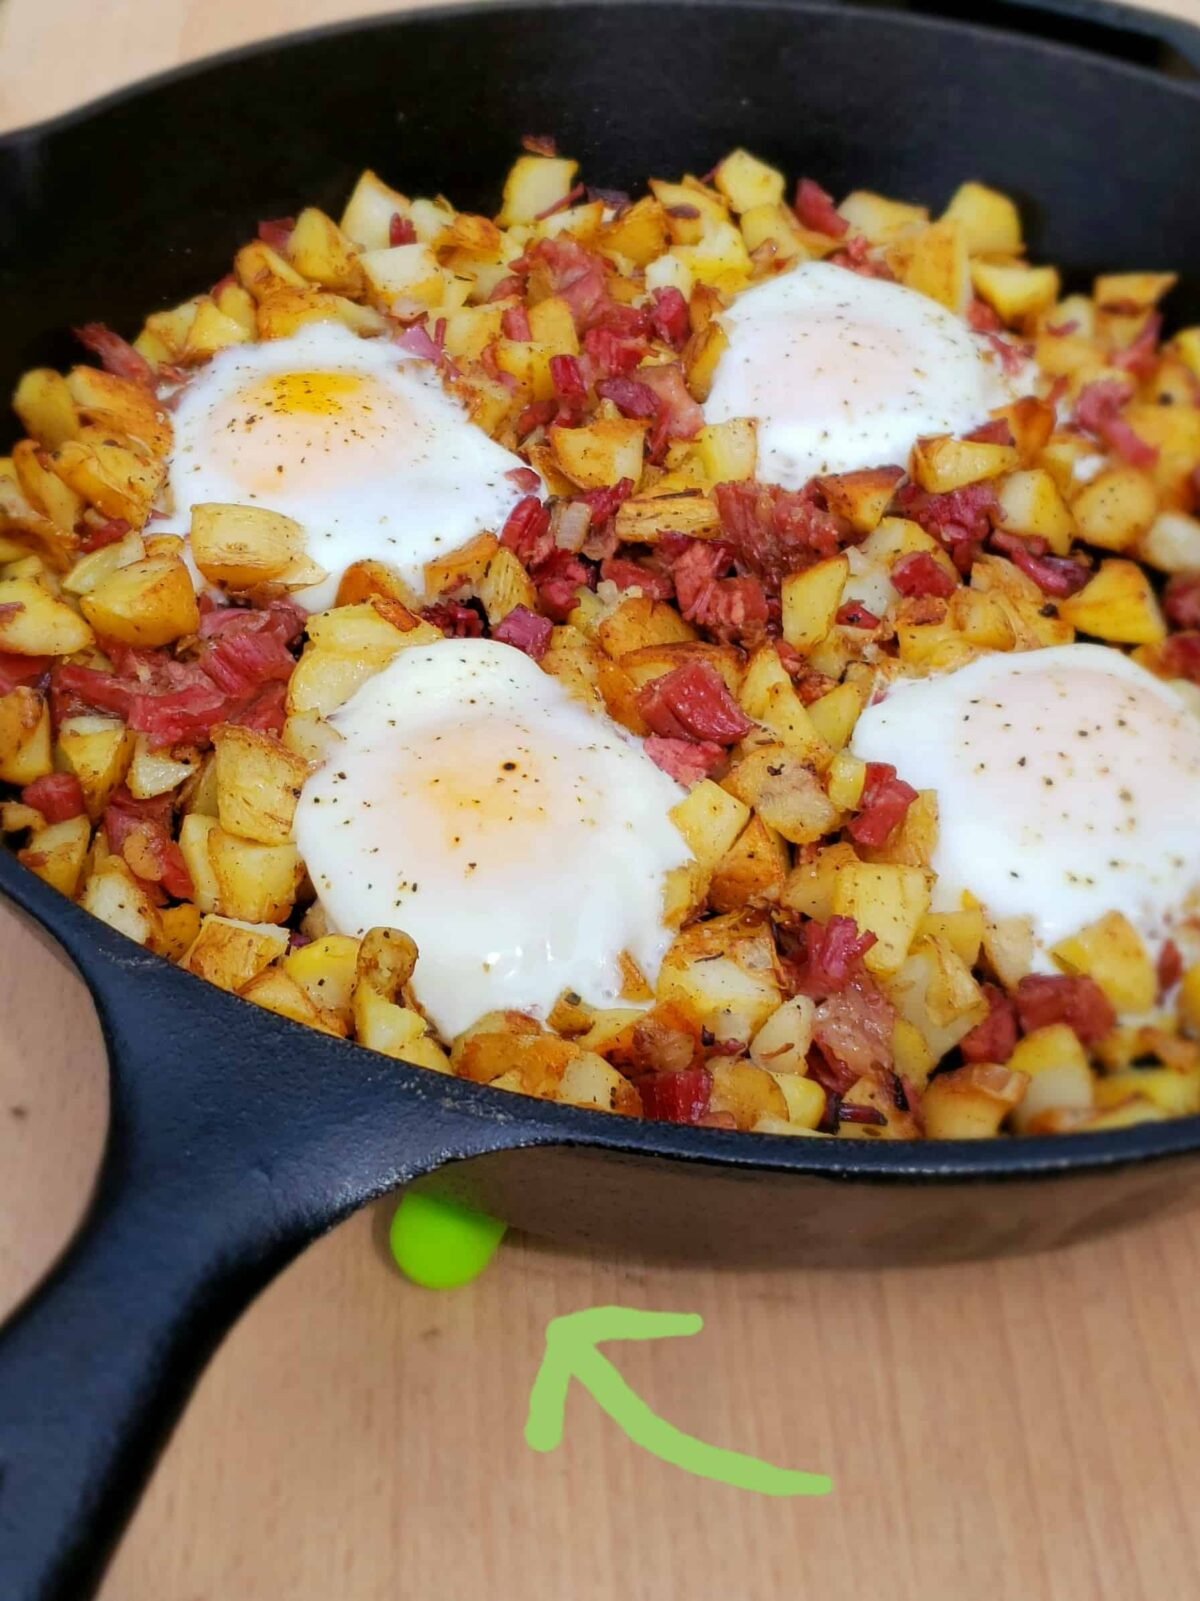 corned beef hash with shirred eggs; green arrow pointing to green trivet